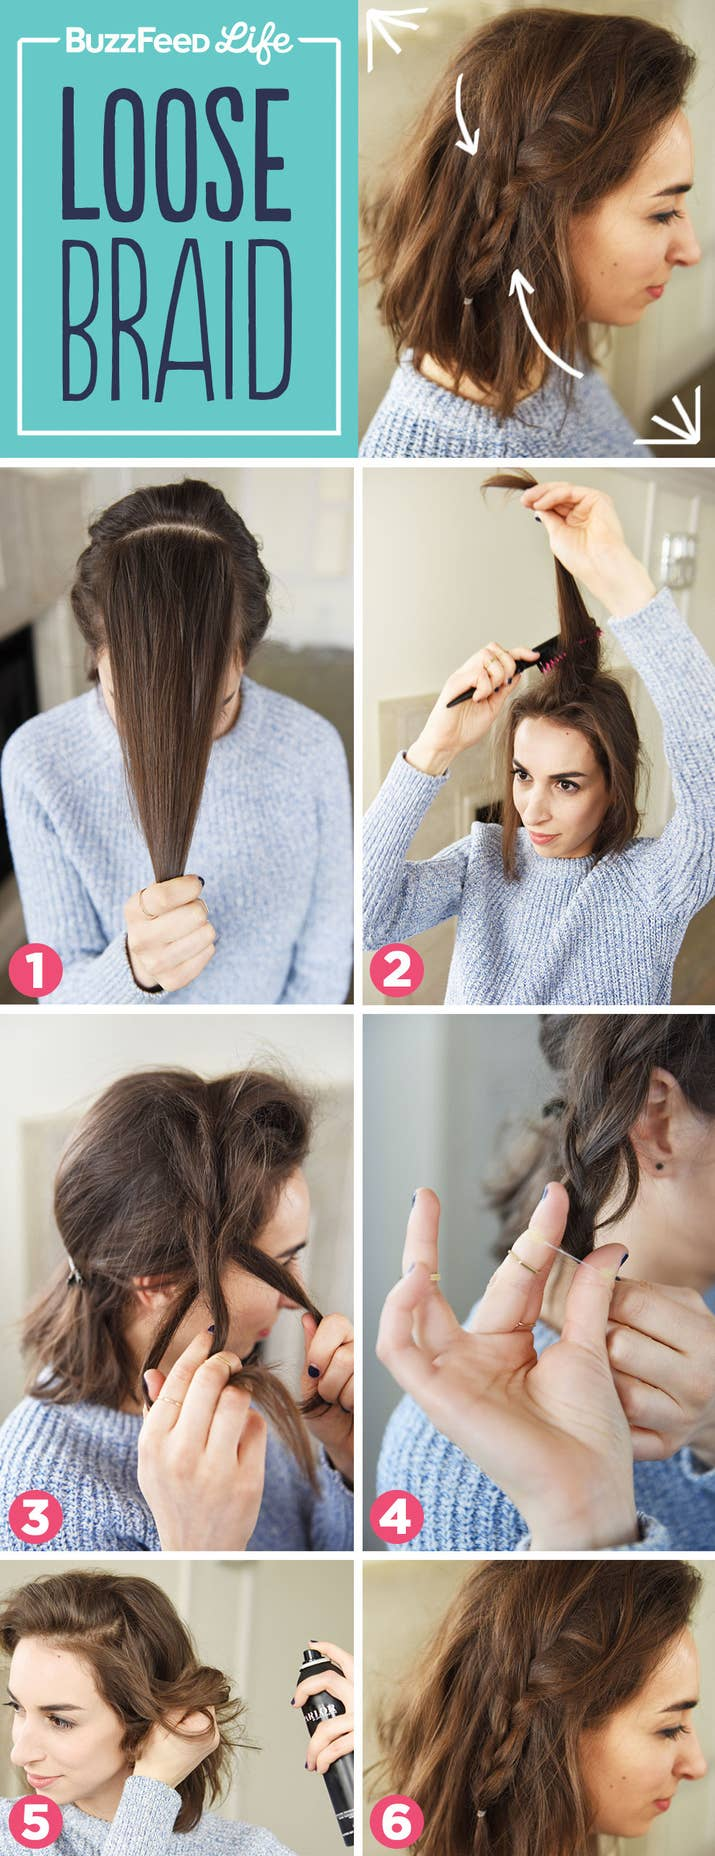 Incredible Hairstyles You Can Learn In Steps Or Less - Braided hairstyles for short hair step by step